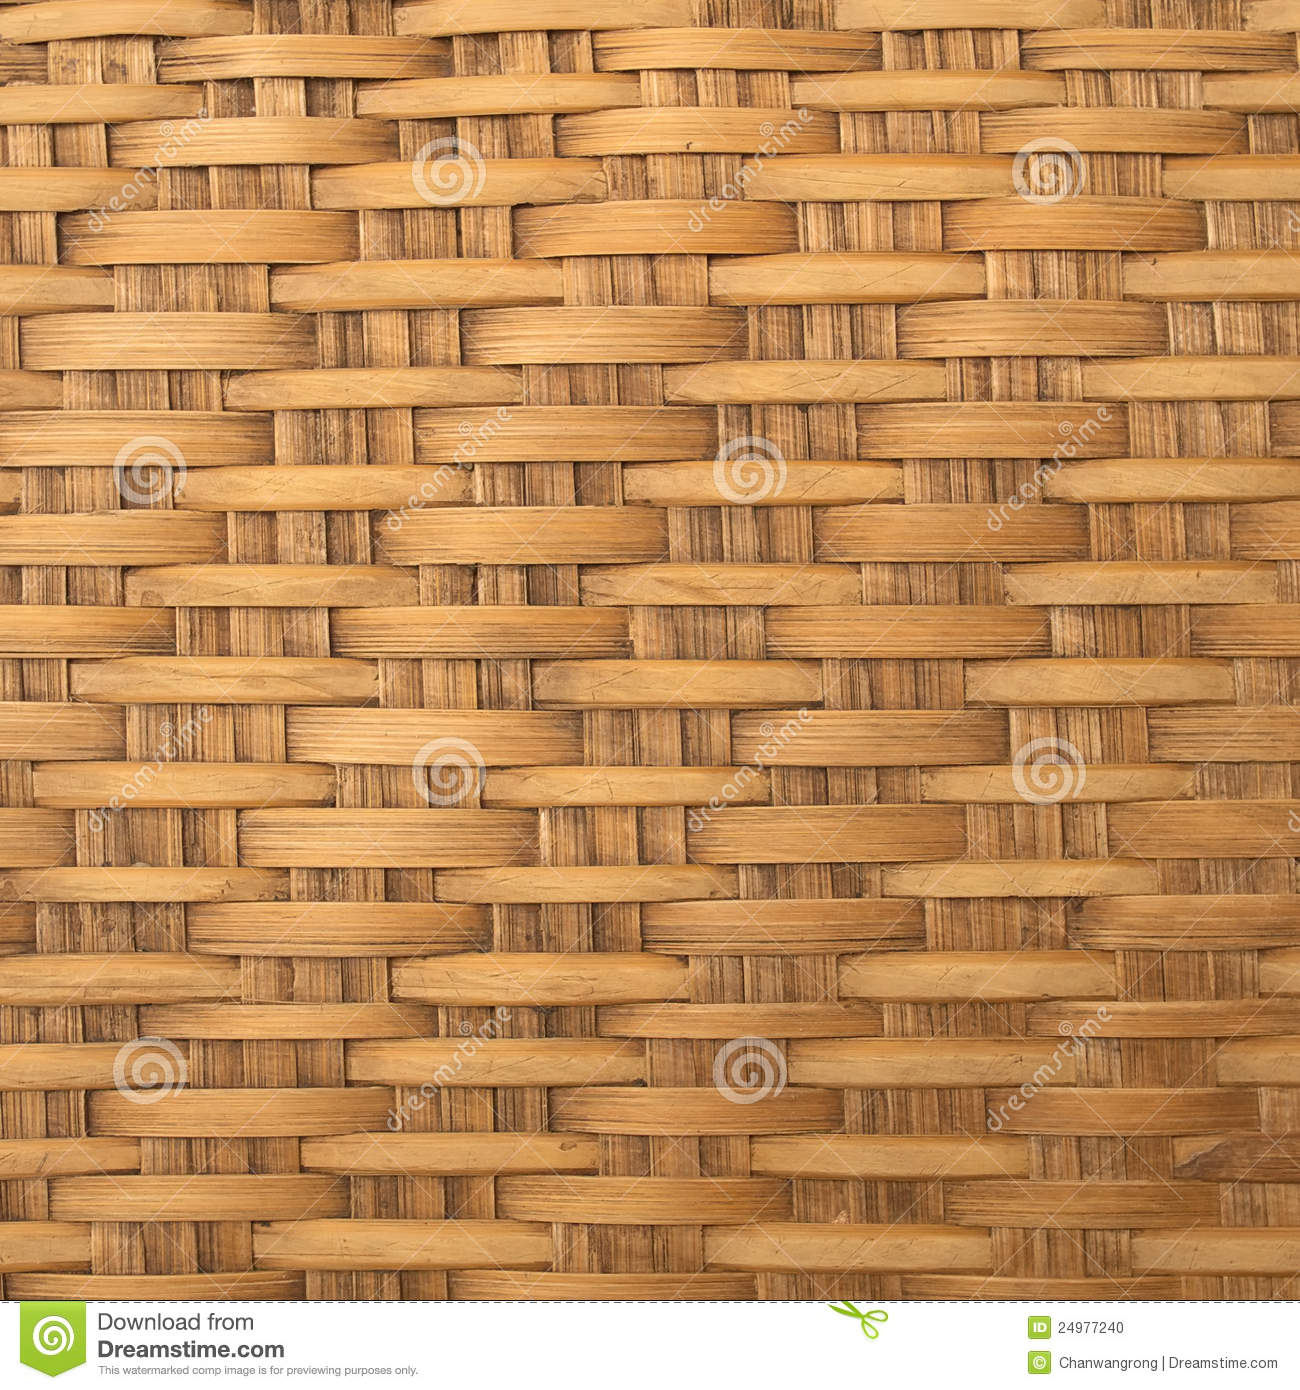 How To Weave A Cedar Basket : Basket weave pattern stock photo image